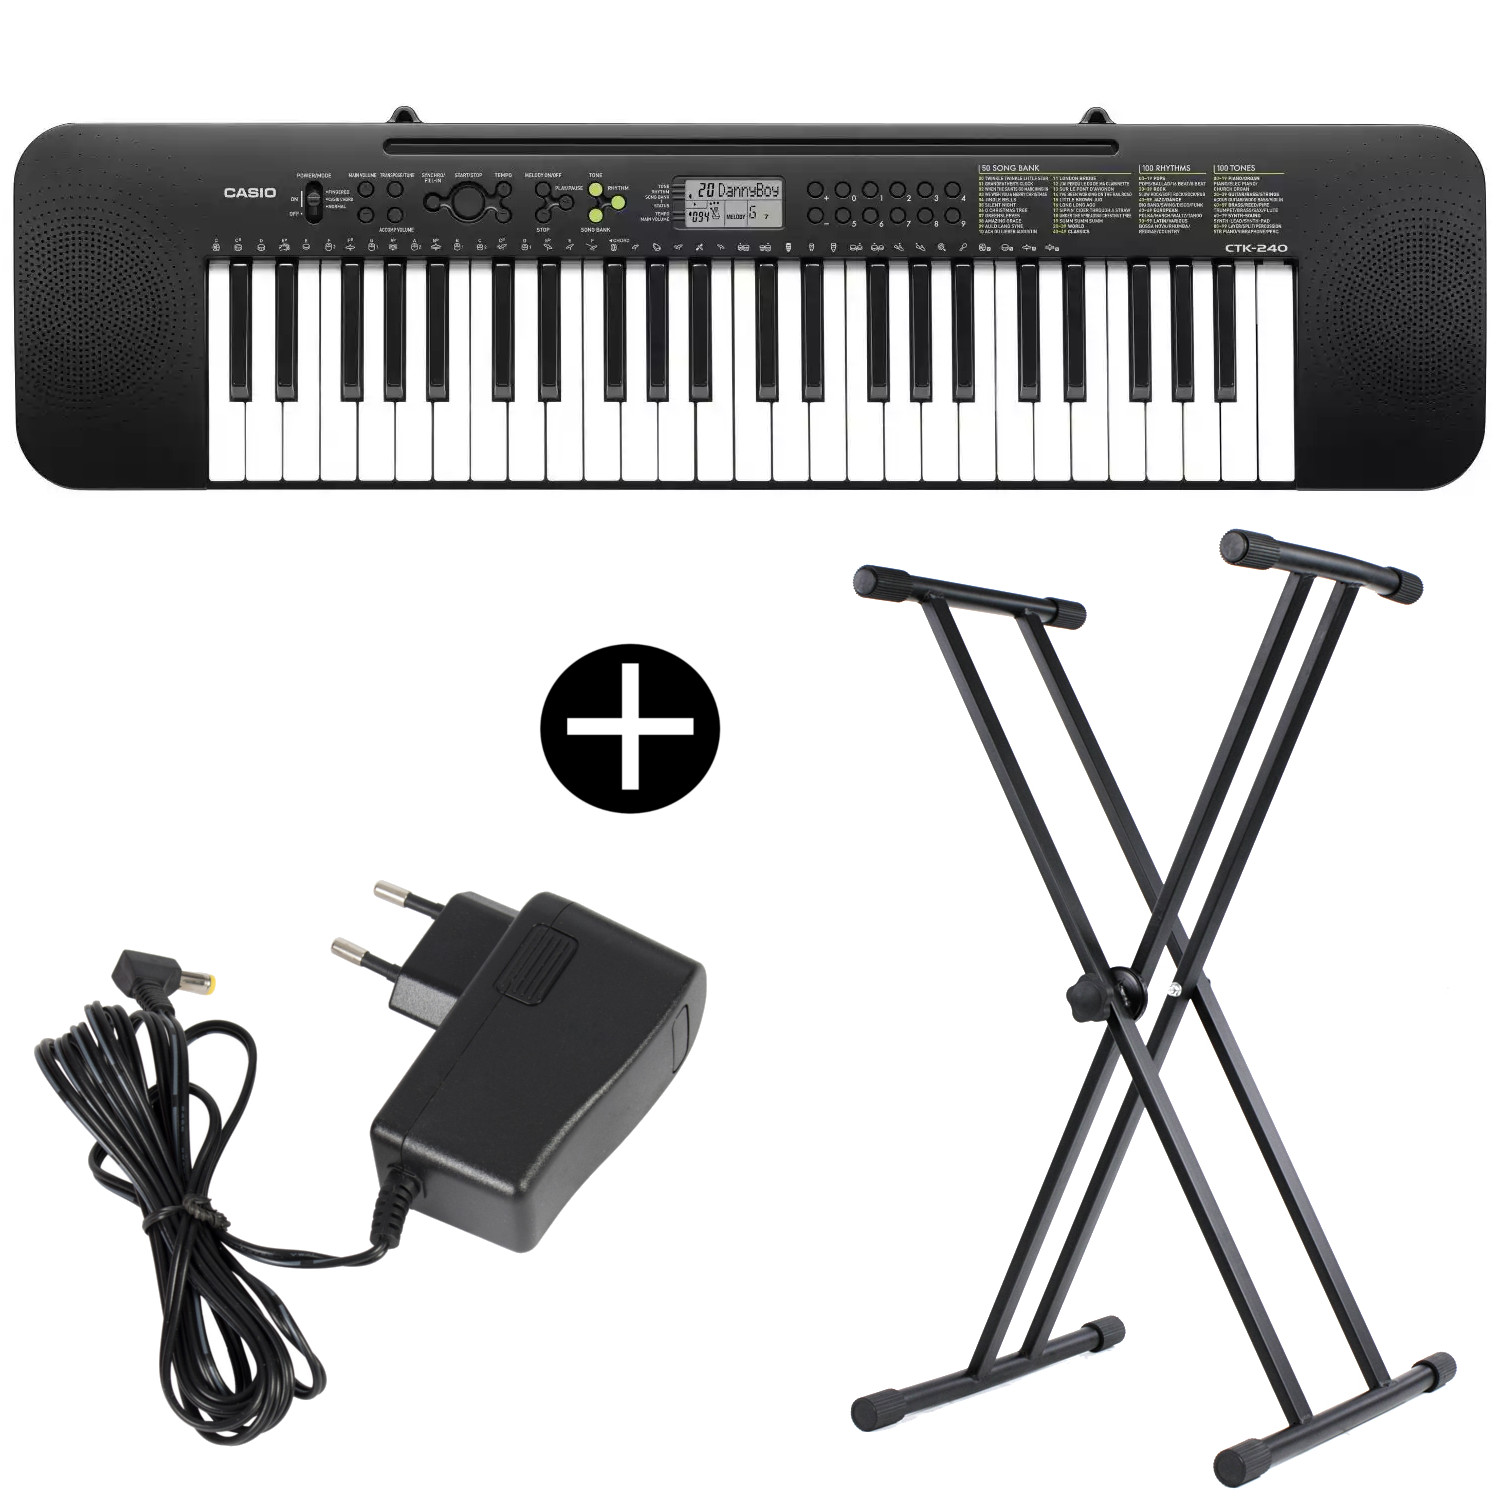 Casio CTK 240 keyboard with stand